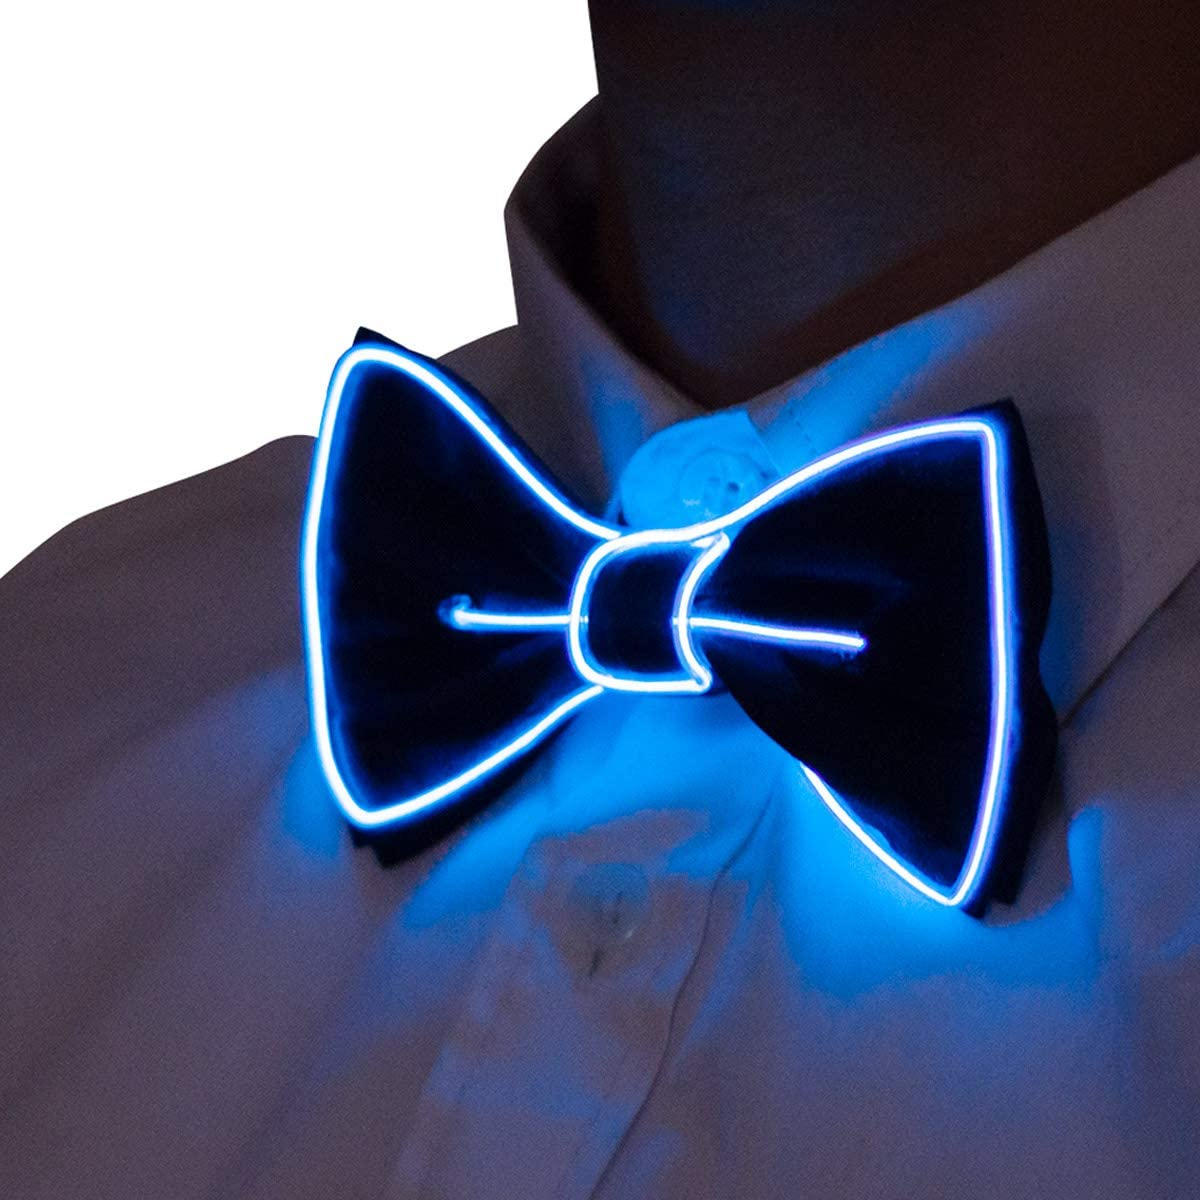 Manmon Luminous Bow Tie Novelty Adjustable EL Wire LED Light Up Glowing Bowtie Neon Nightlife Light Up Bow Tie